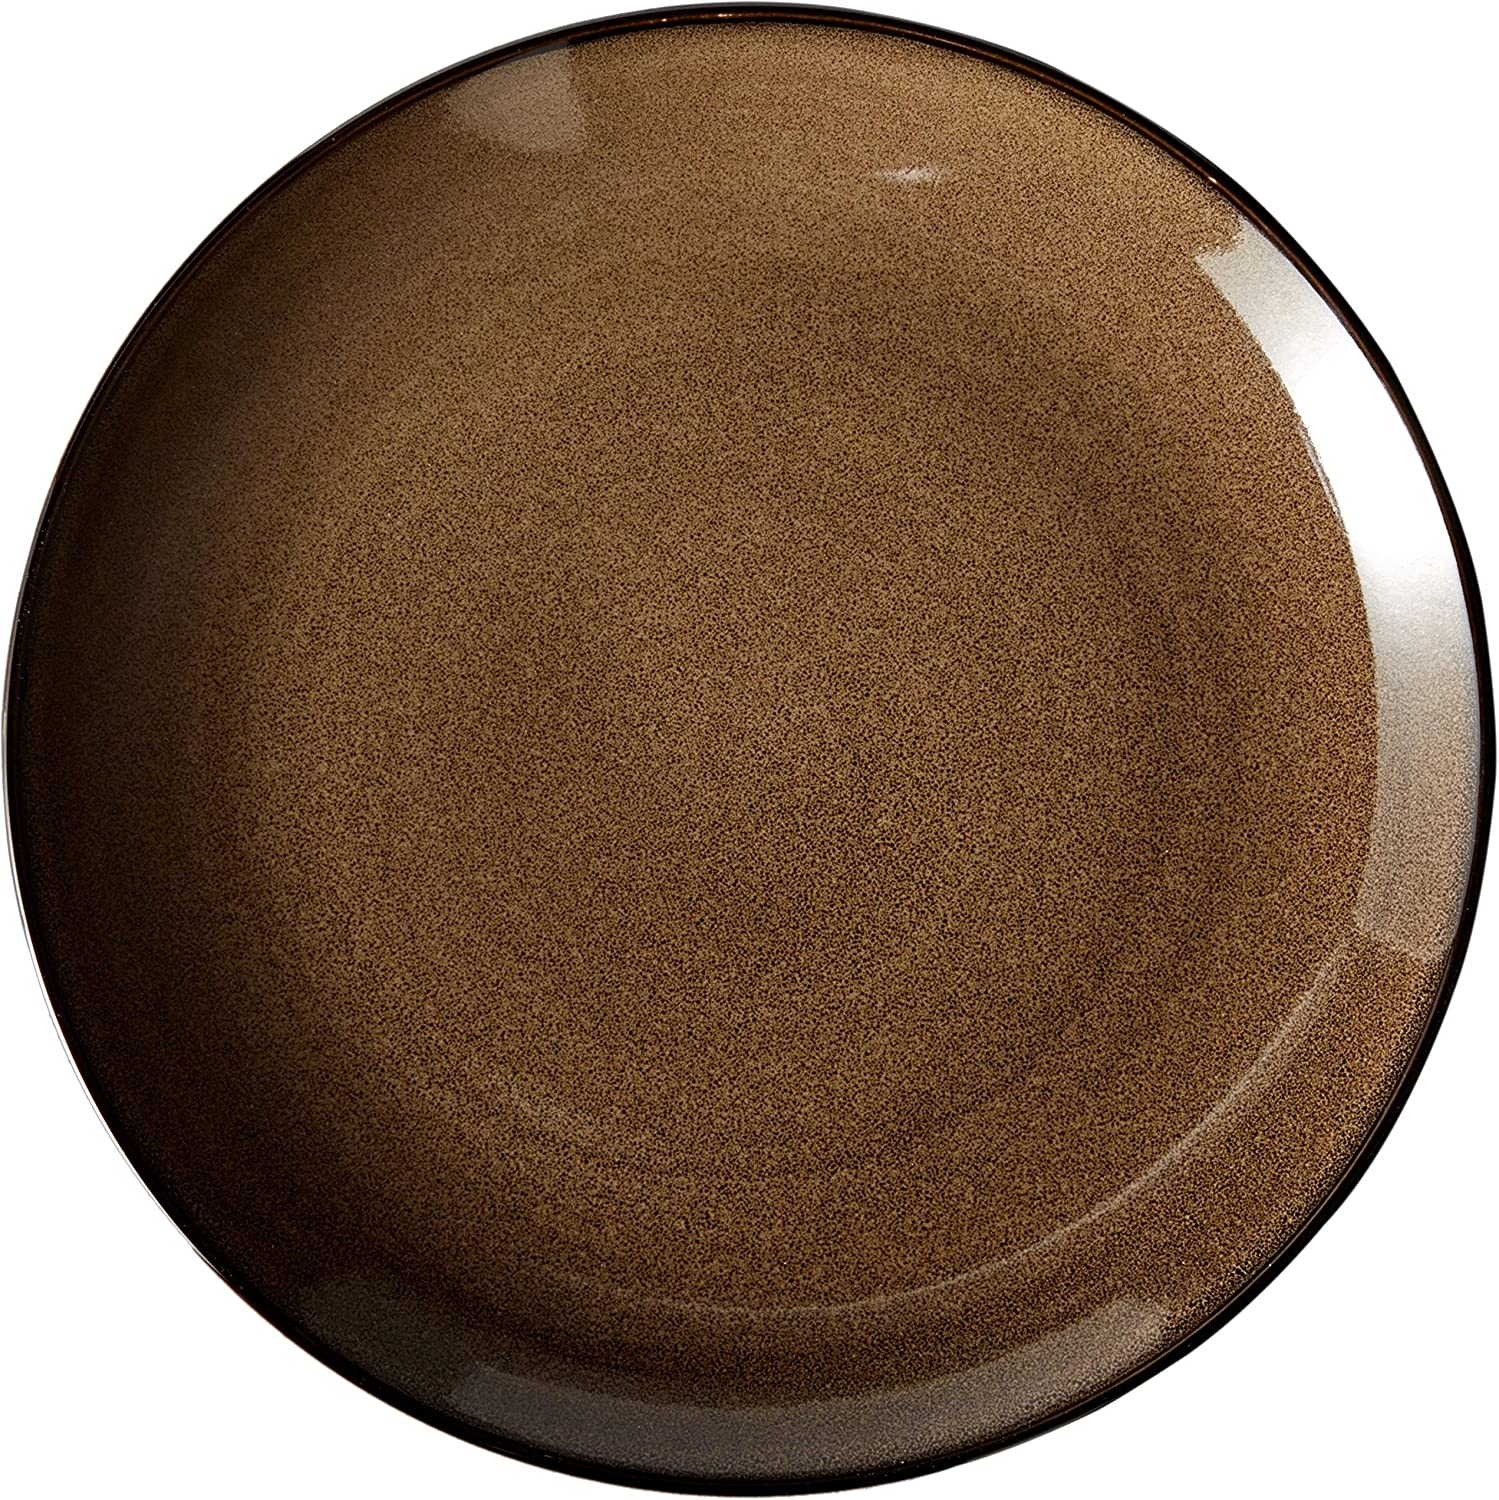 "Oneida Foodservice L6753059163 Rustic Chestnut Round Coupe Plate, 12.25"", Set of 12"